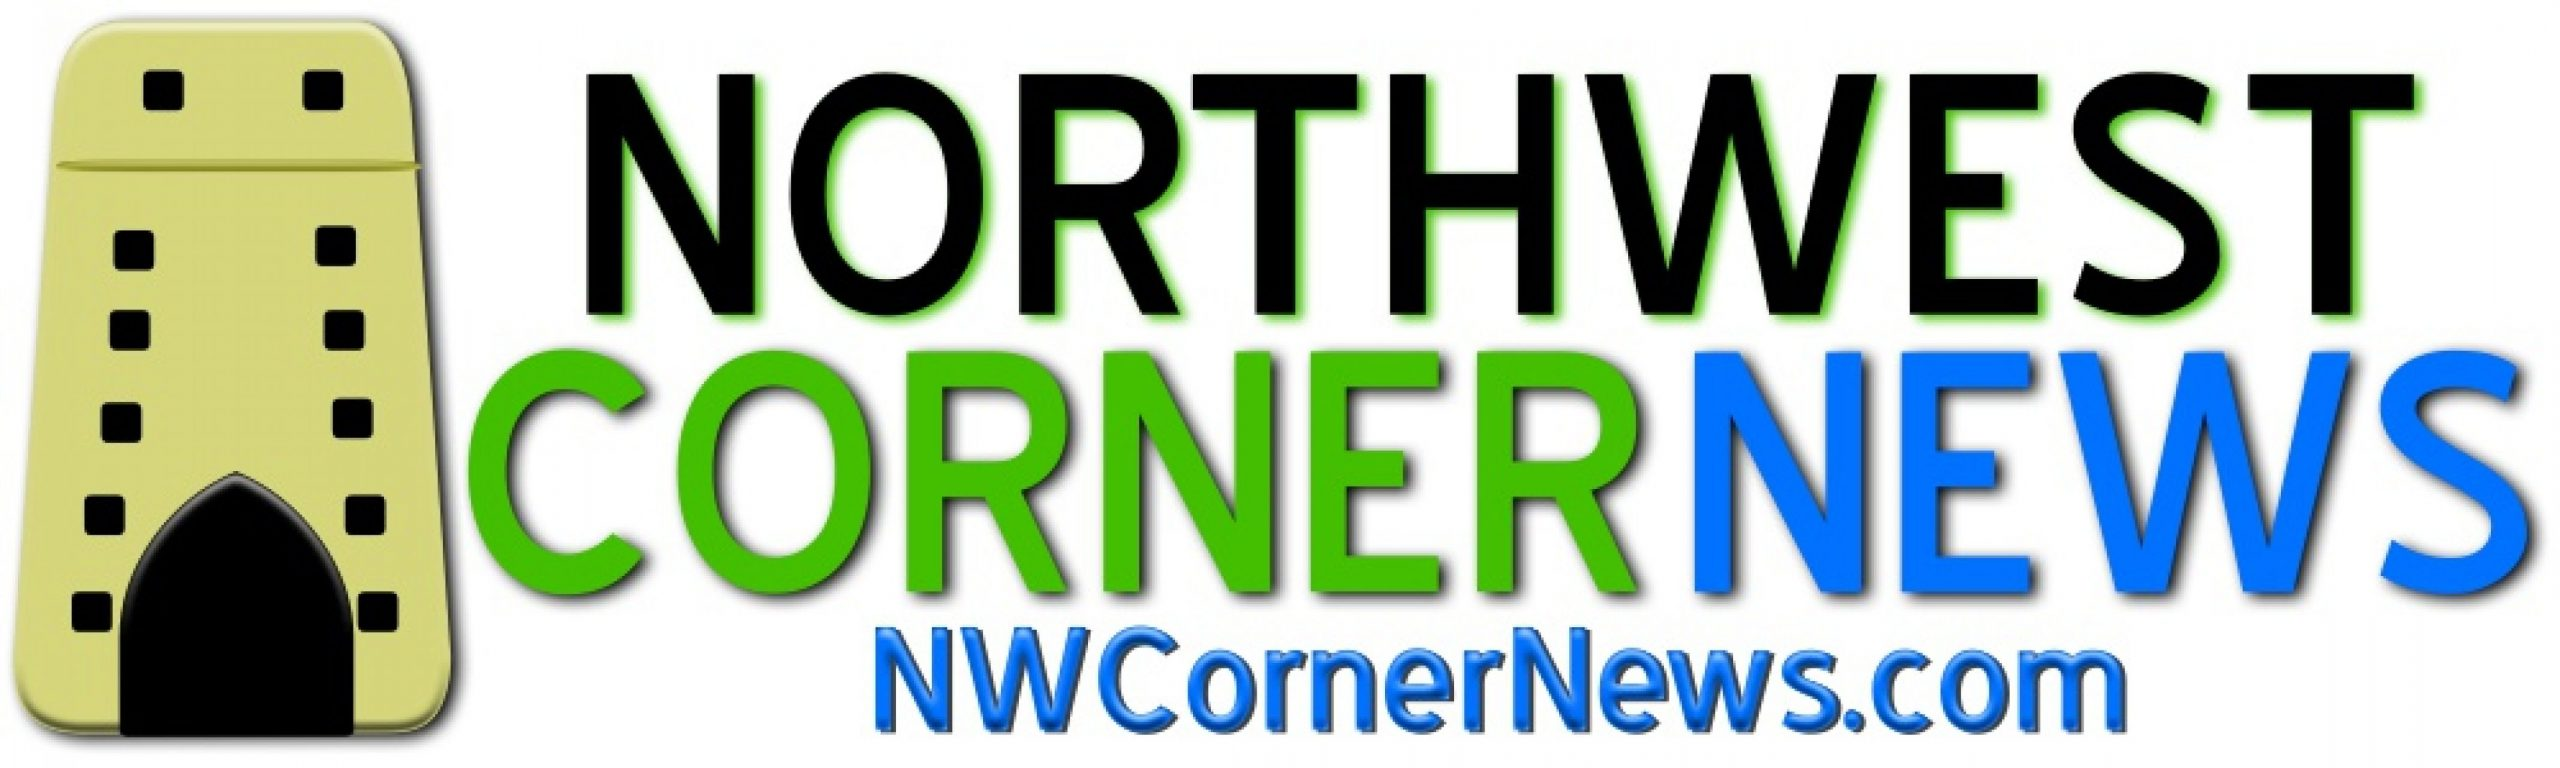 Northwest Corner News